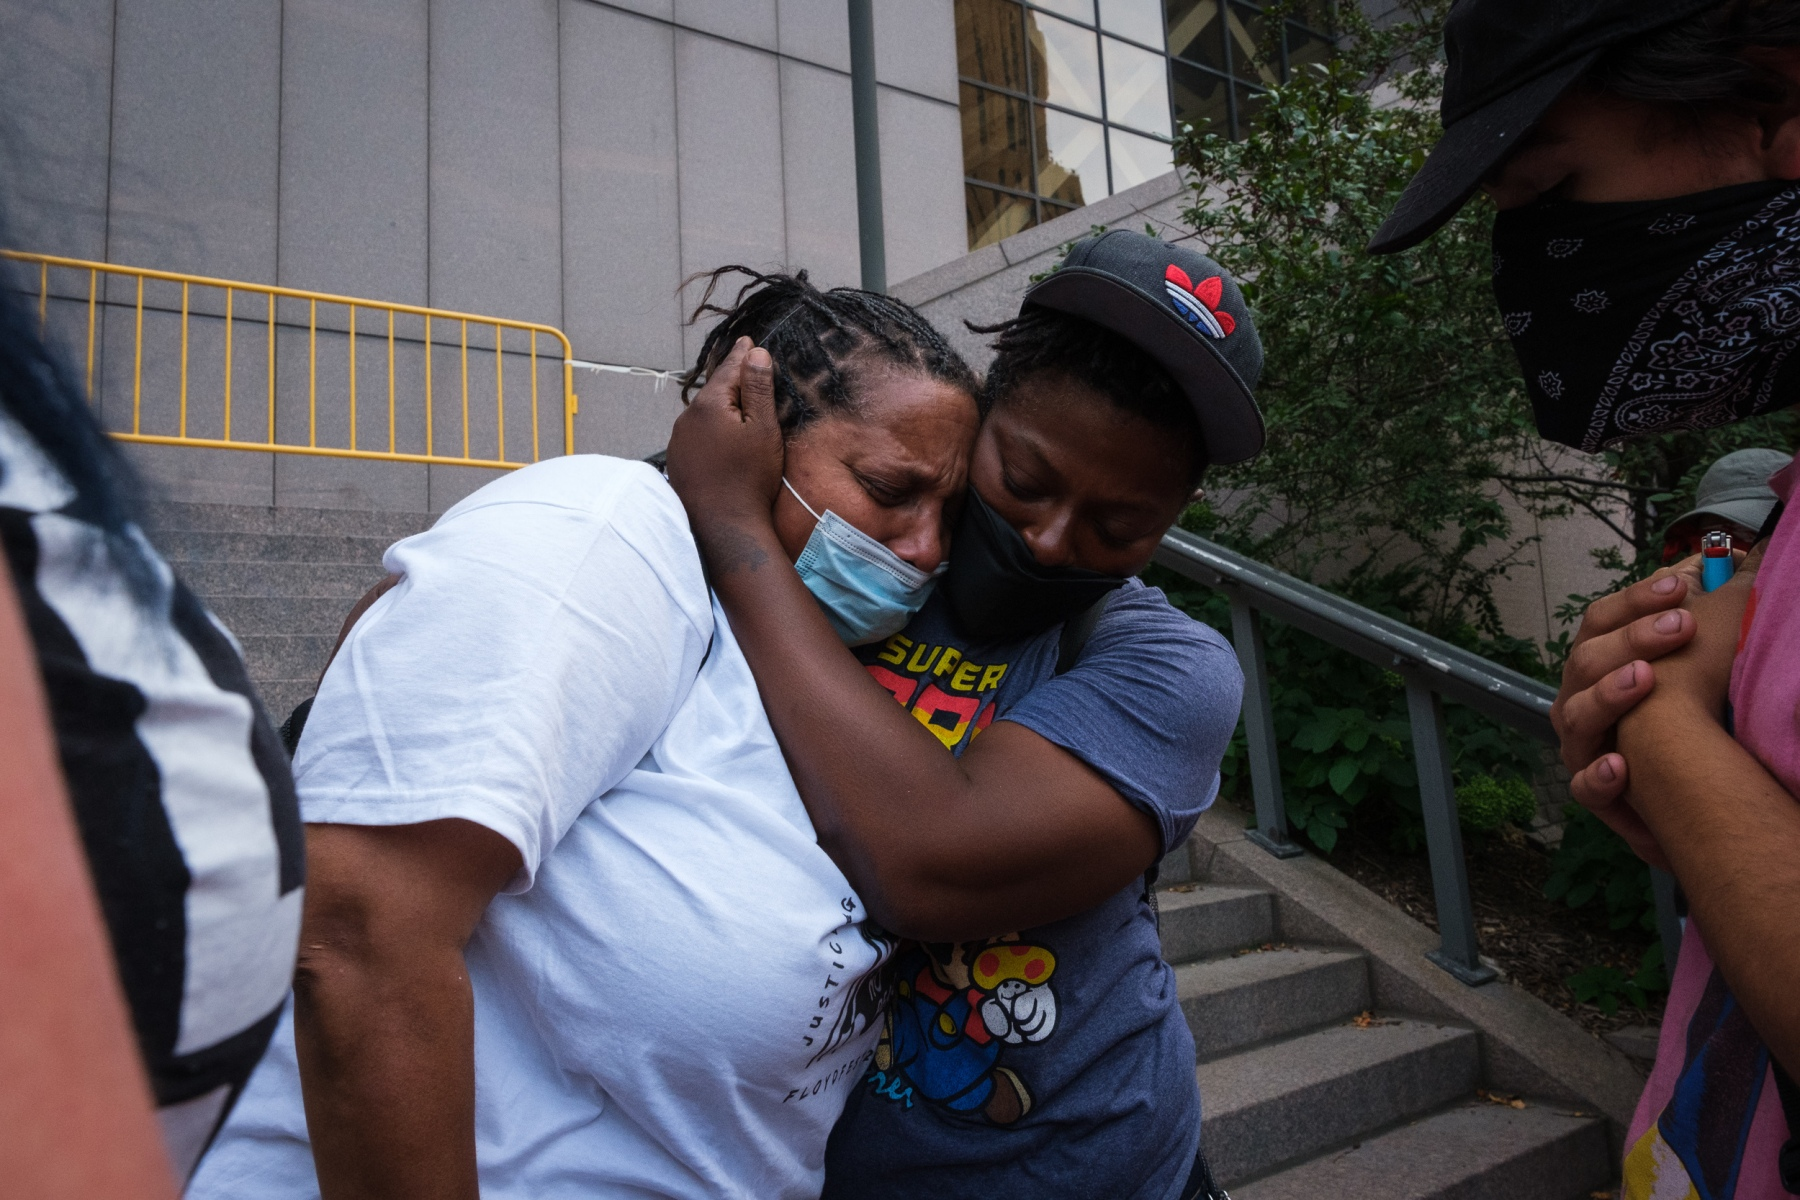 A Black Lives Matter protestor hugs Del Shea Perry, whose son died in a northern Minnesota jail after his complaints of bowel pains were ignored by jail staff, on the steps of Hennepin County Government Center in Minneapolis on August 24, 2020.